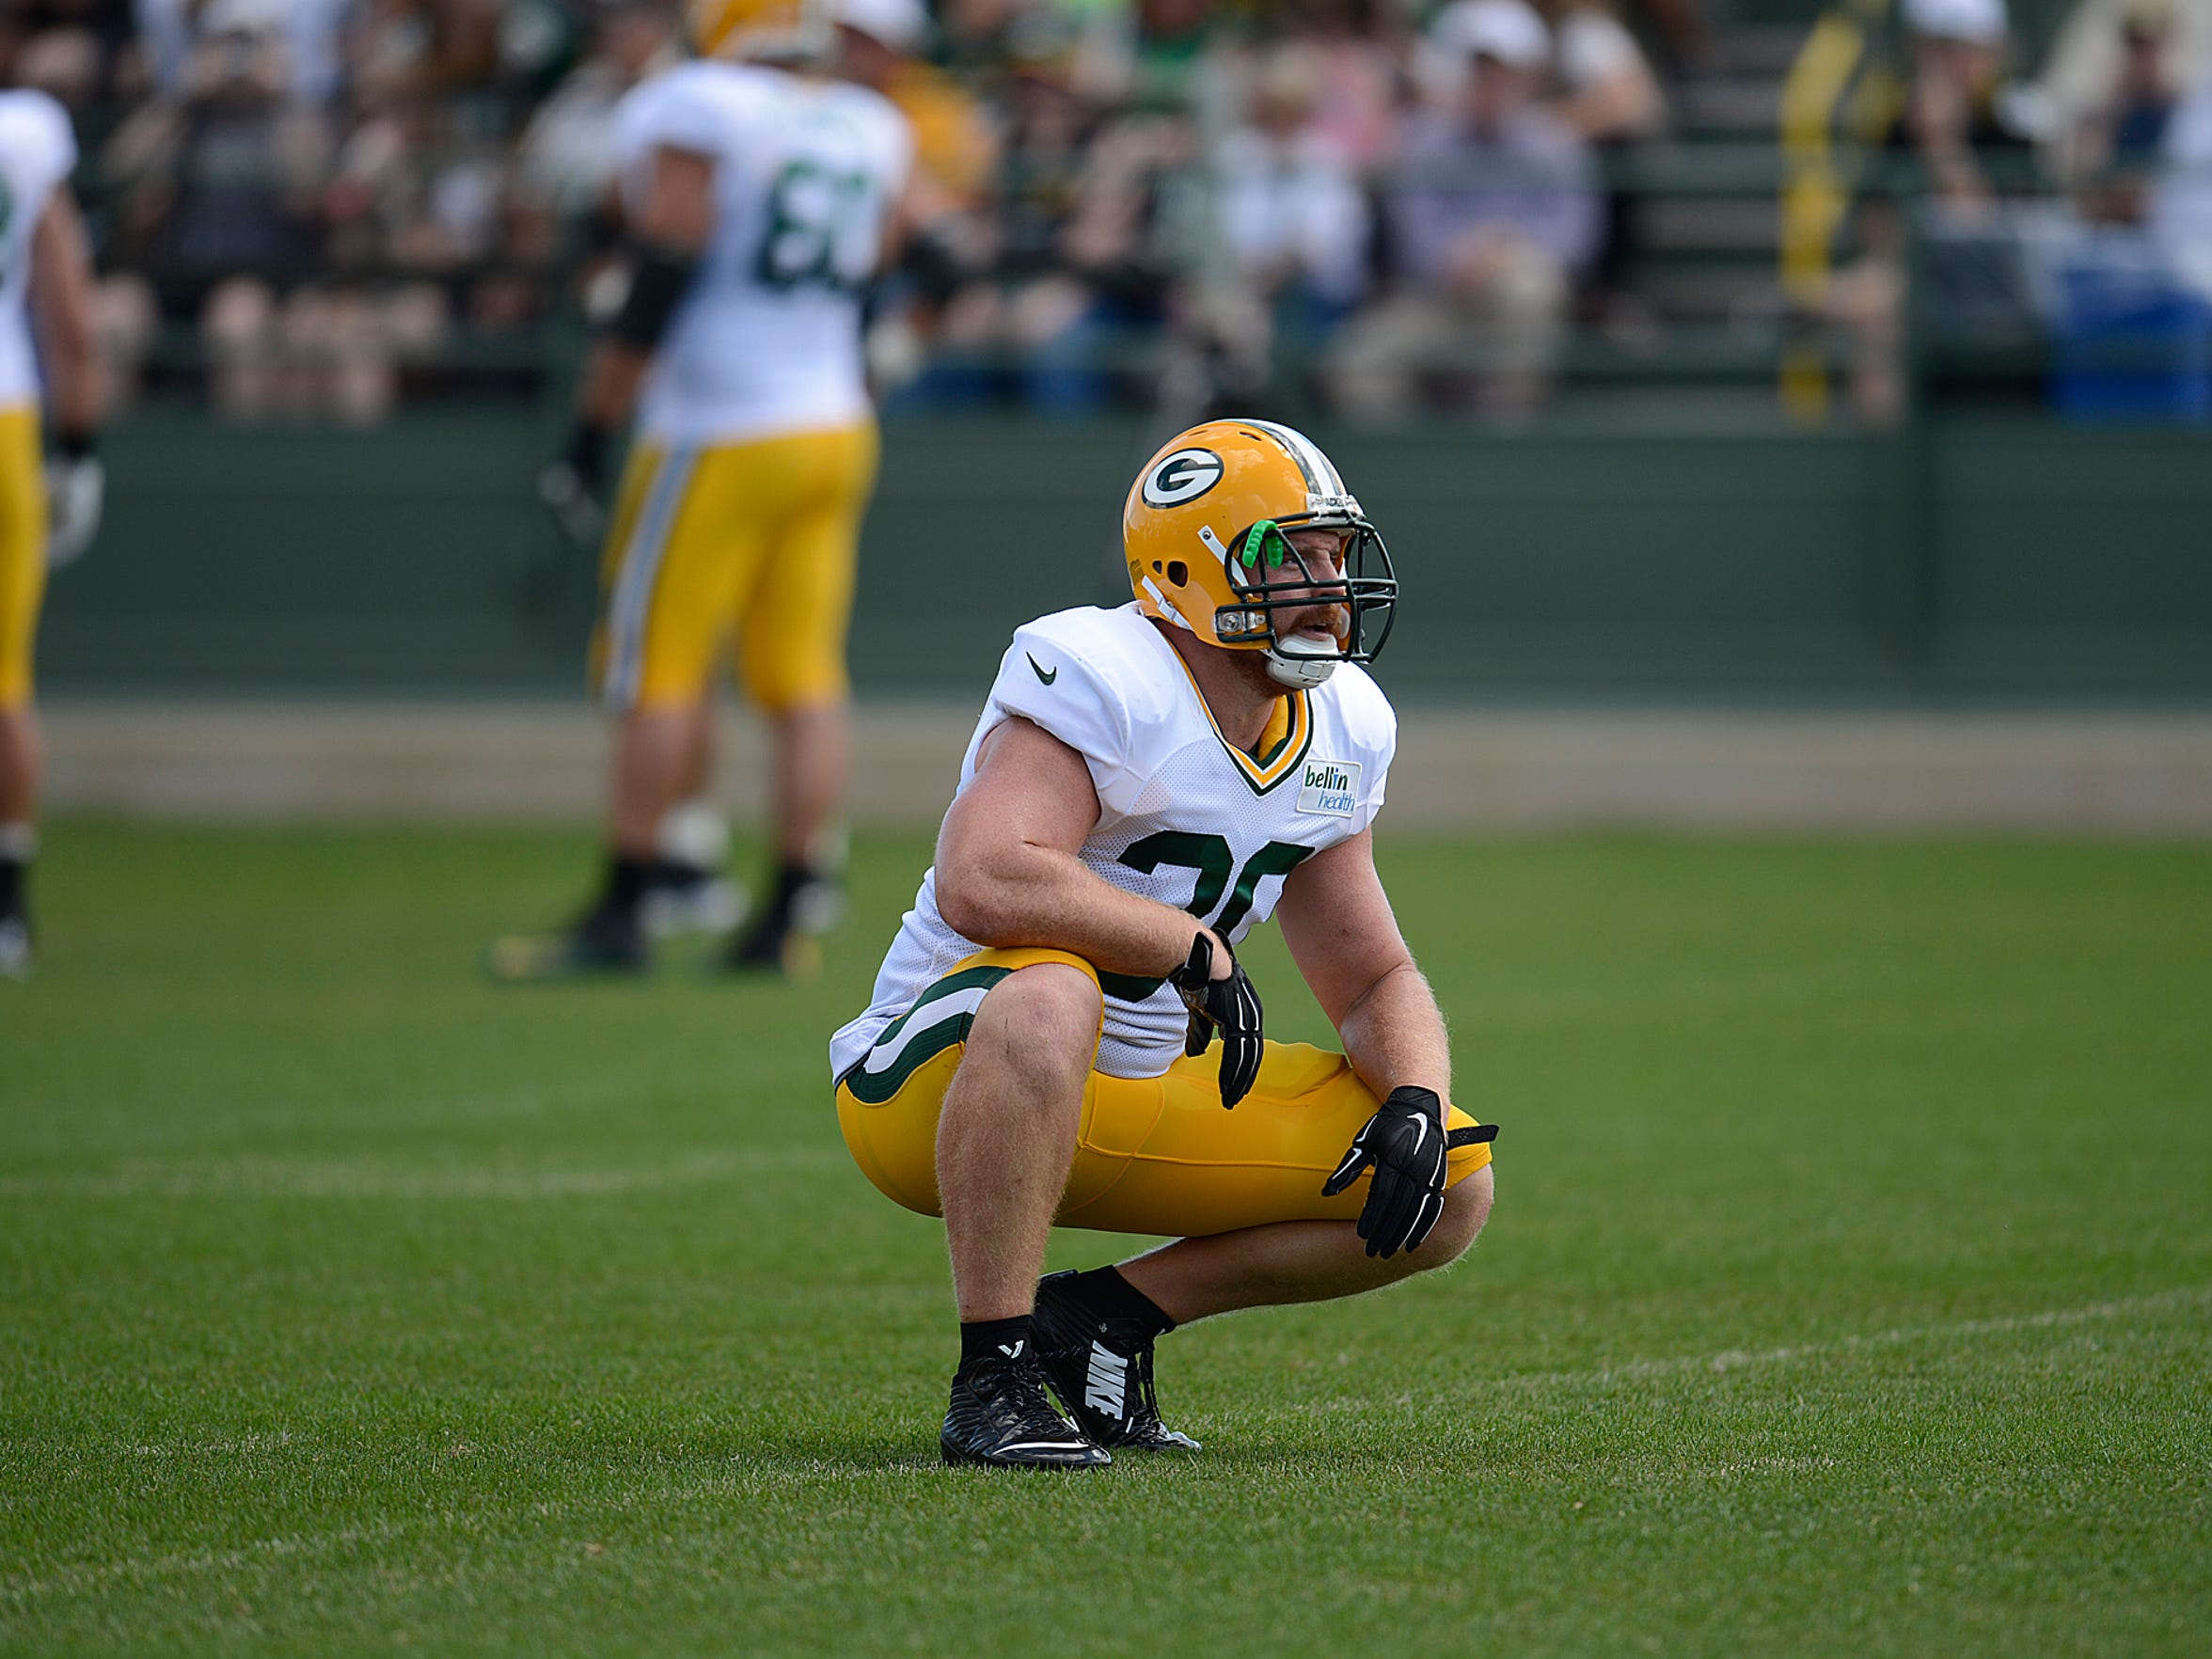 Green Bay Packers fullback John Kuhn looks on during